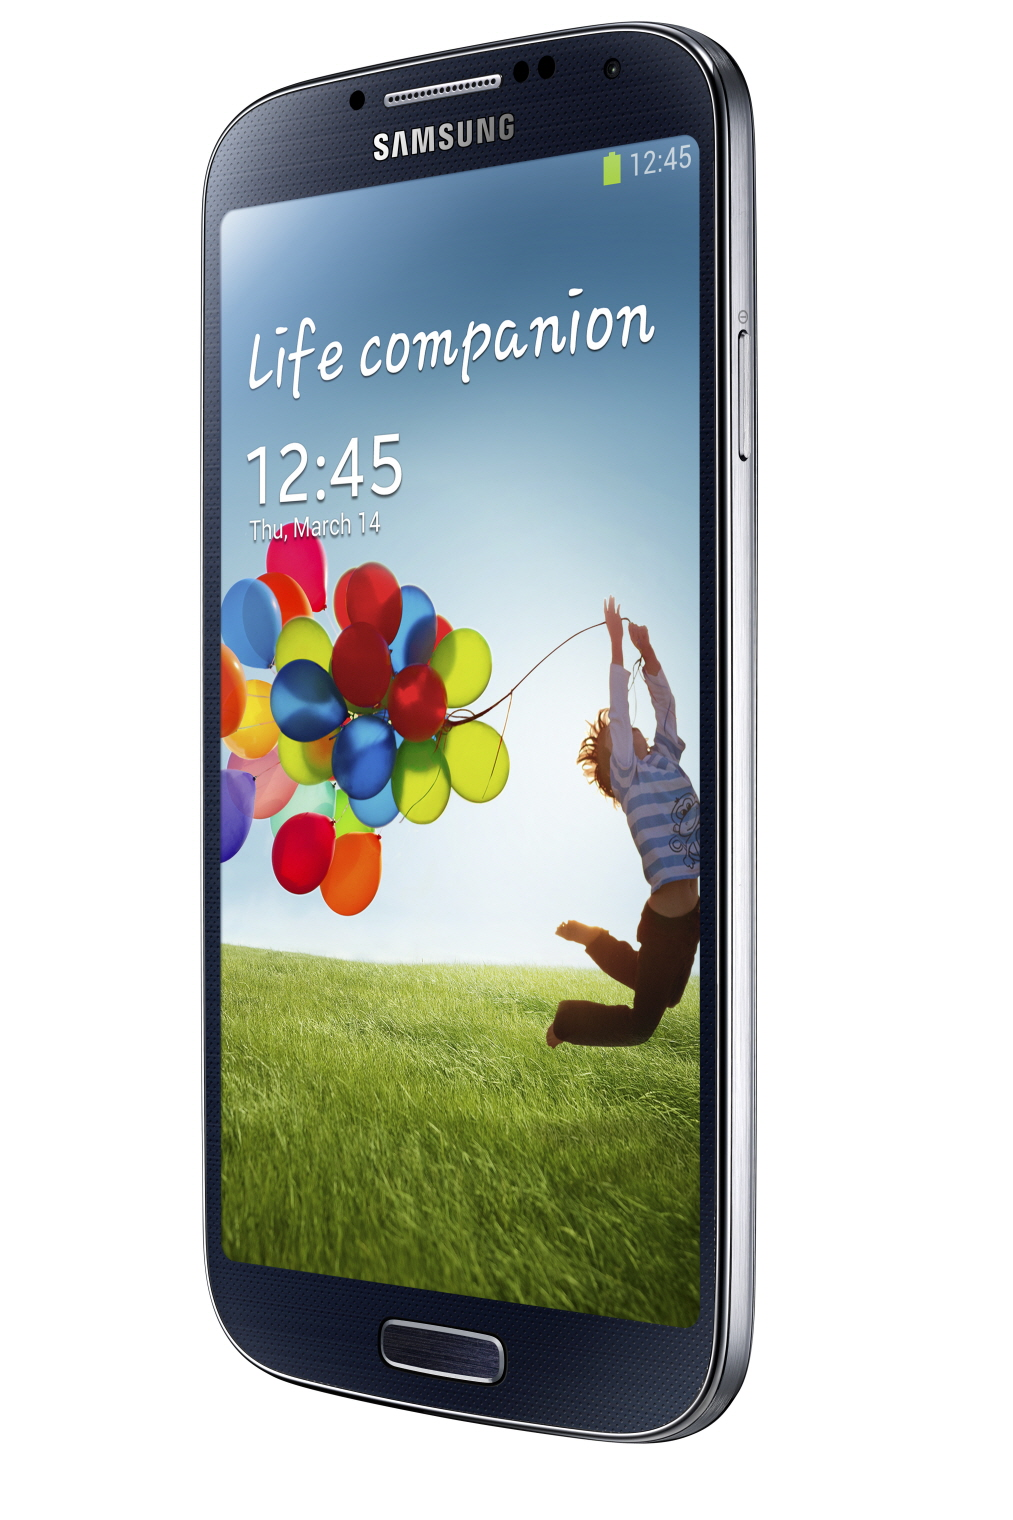 GALAXY-S-4-Product-Image-6